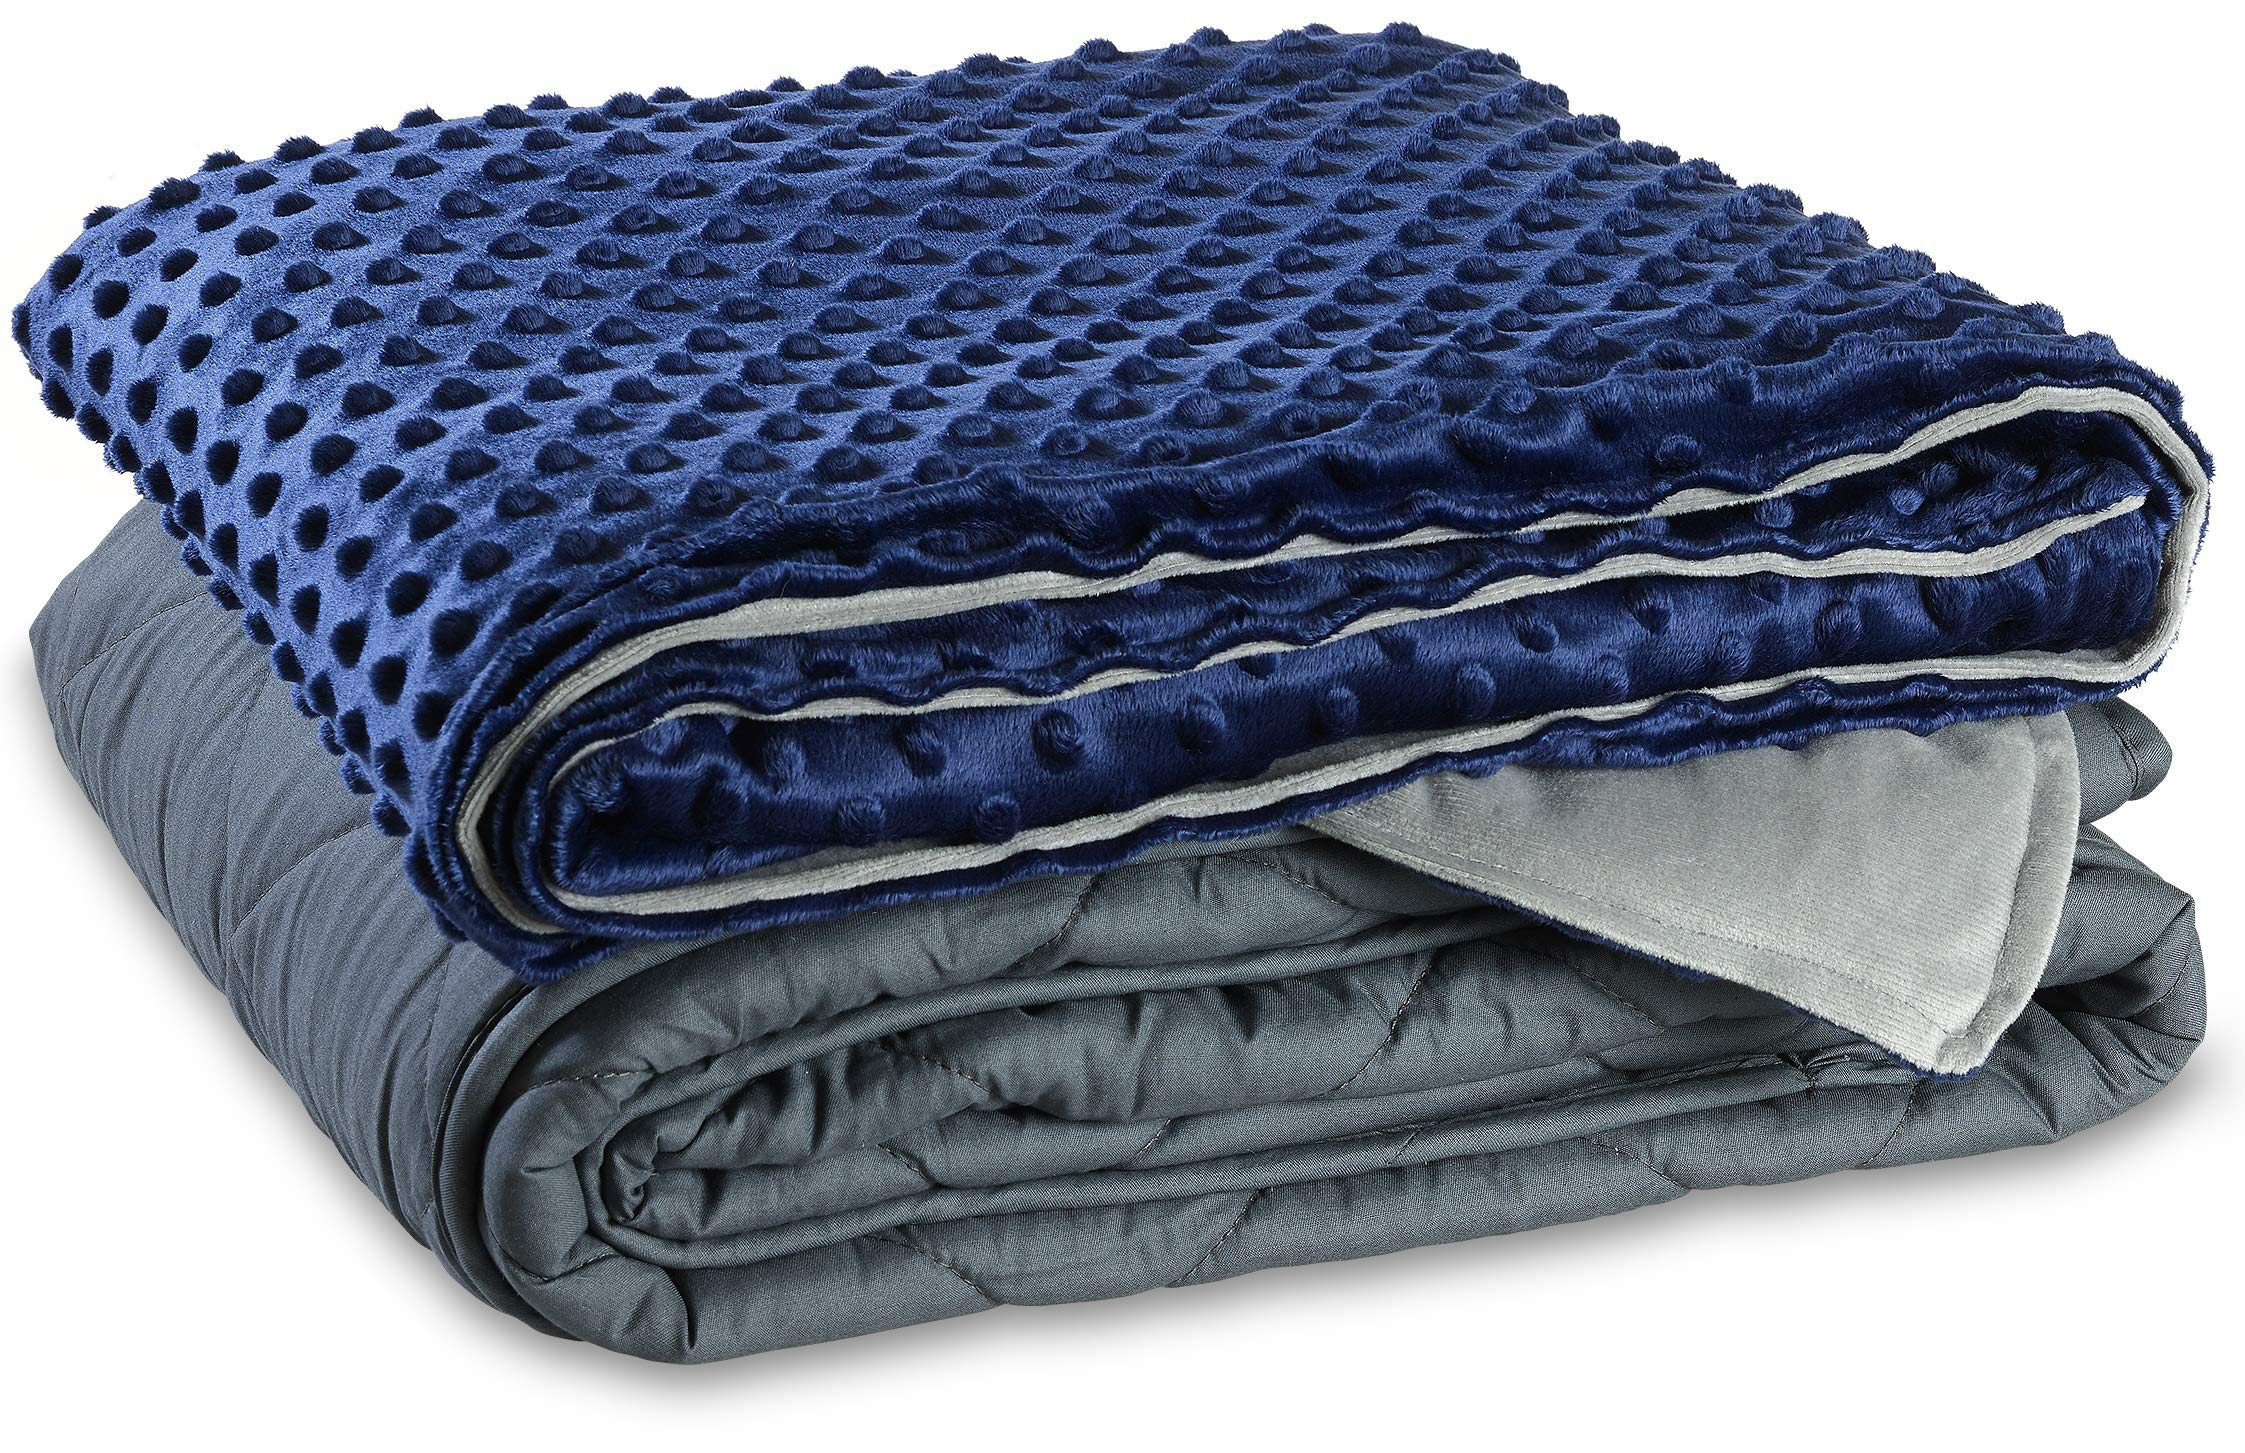 SlumberCovers Weighted Blanket for Kids, 7 pounds (for Kids 40 to 80 lbs). Includes 2-Sided Dotted Minky Cover 41''x60'' Navy Blue and Gray. PerfectStay Keeps Weighted Beads in Place.